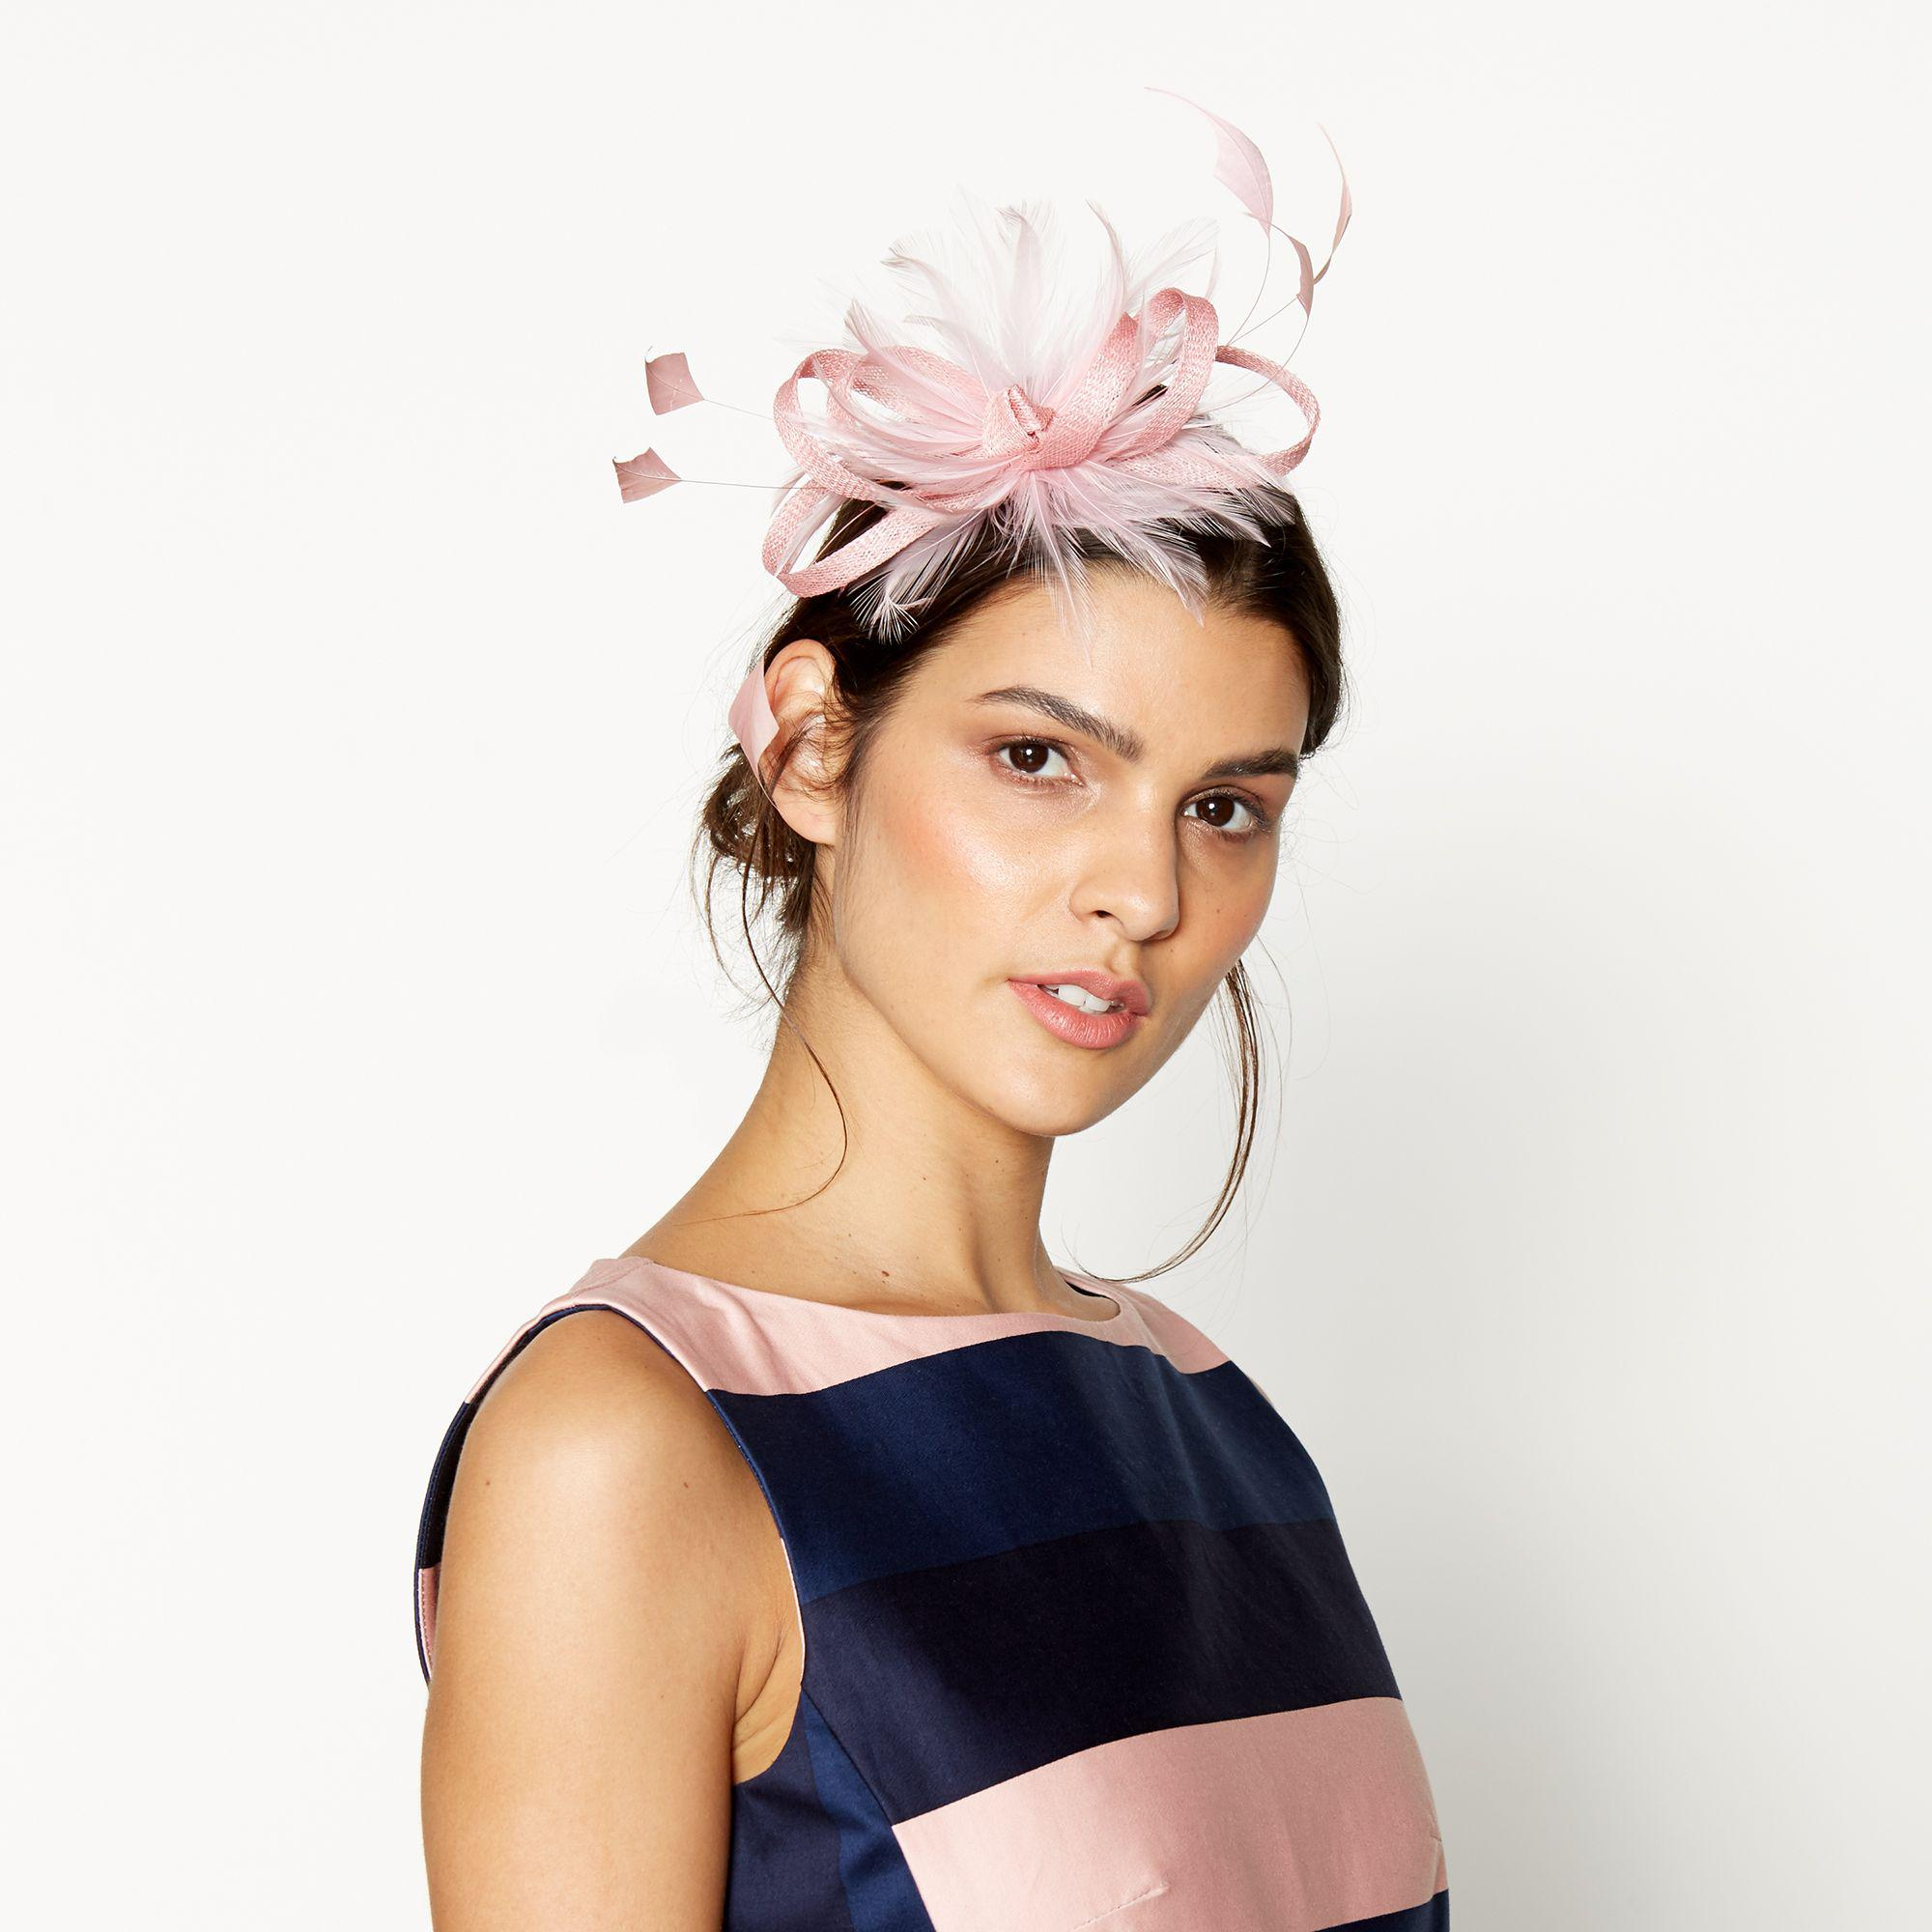 J By Jasper Conran Pink Feather Fascinator in Pink - Lyst f1476498156